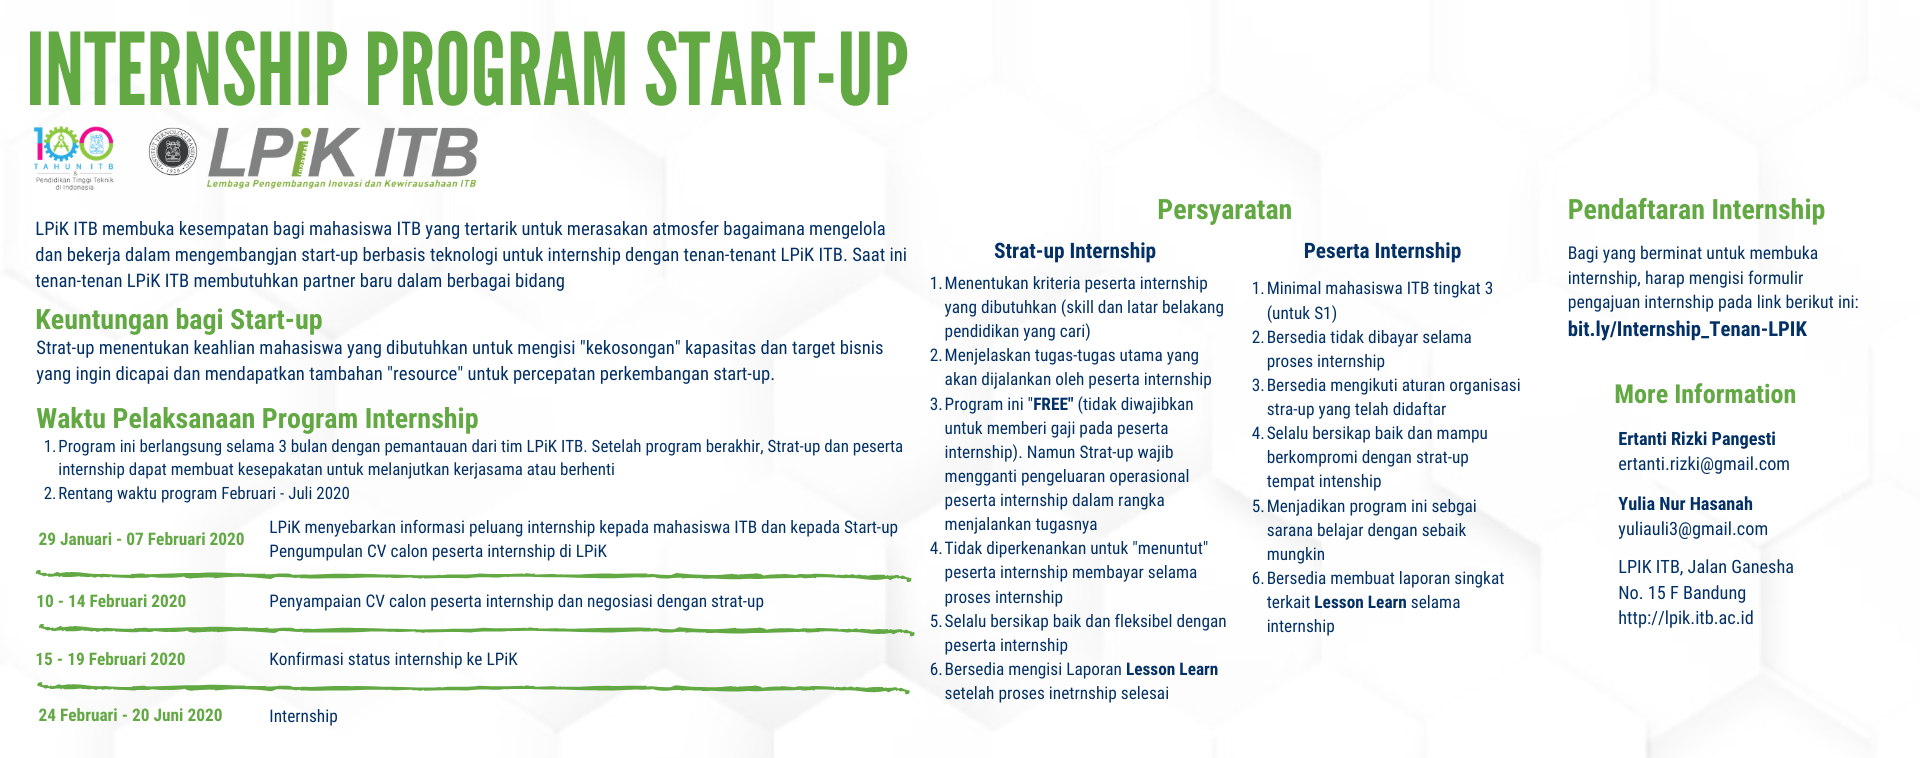 Program Magang Start-up